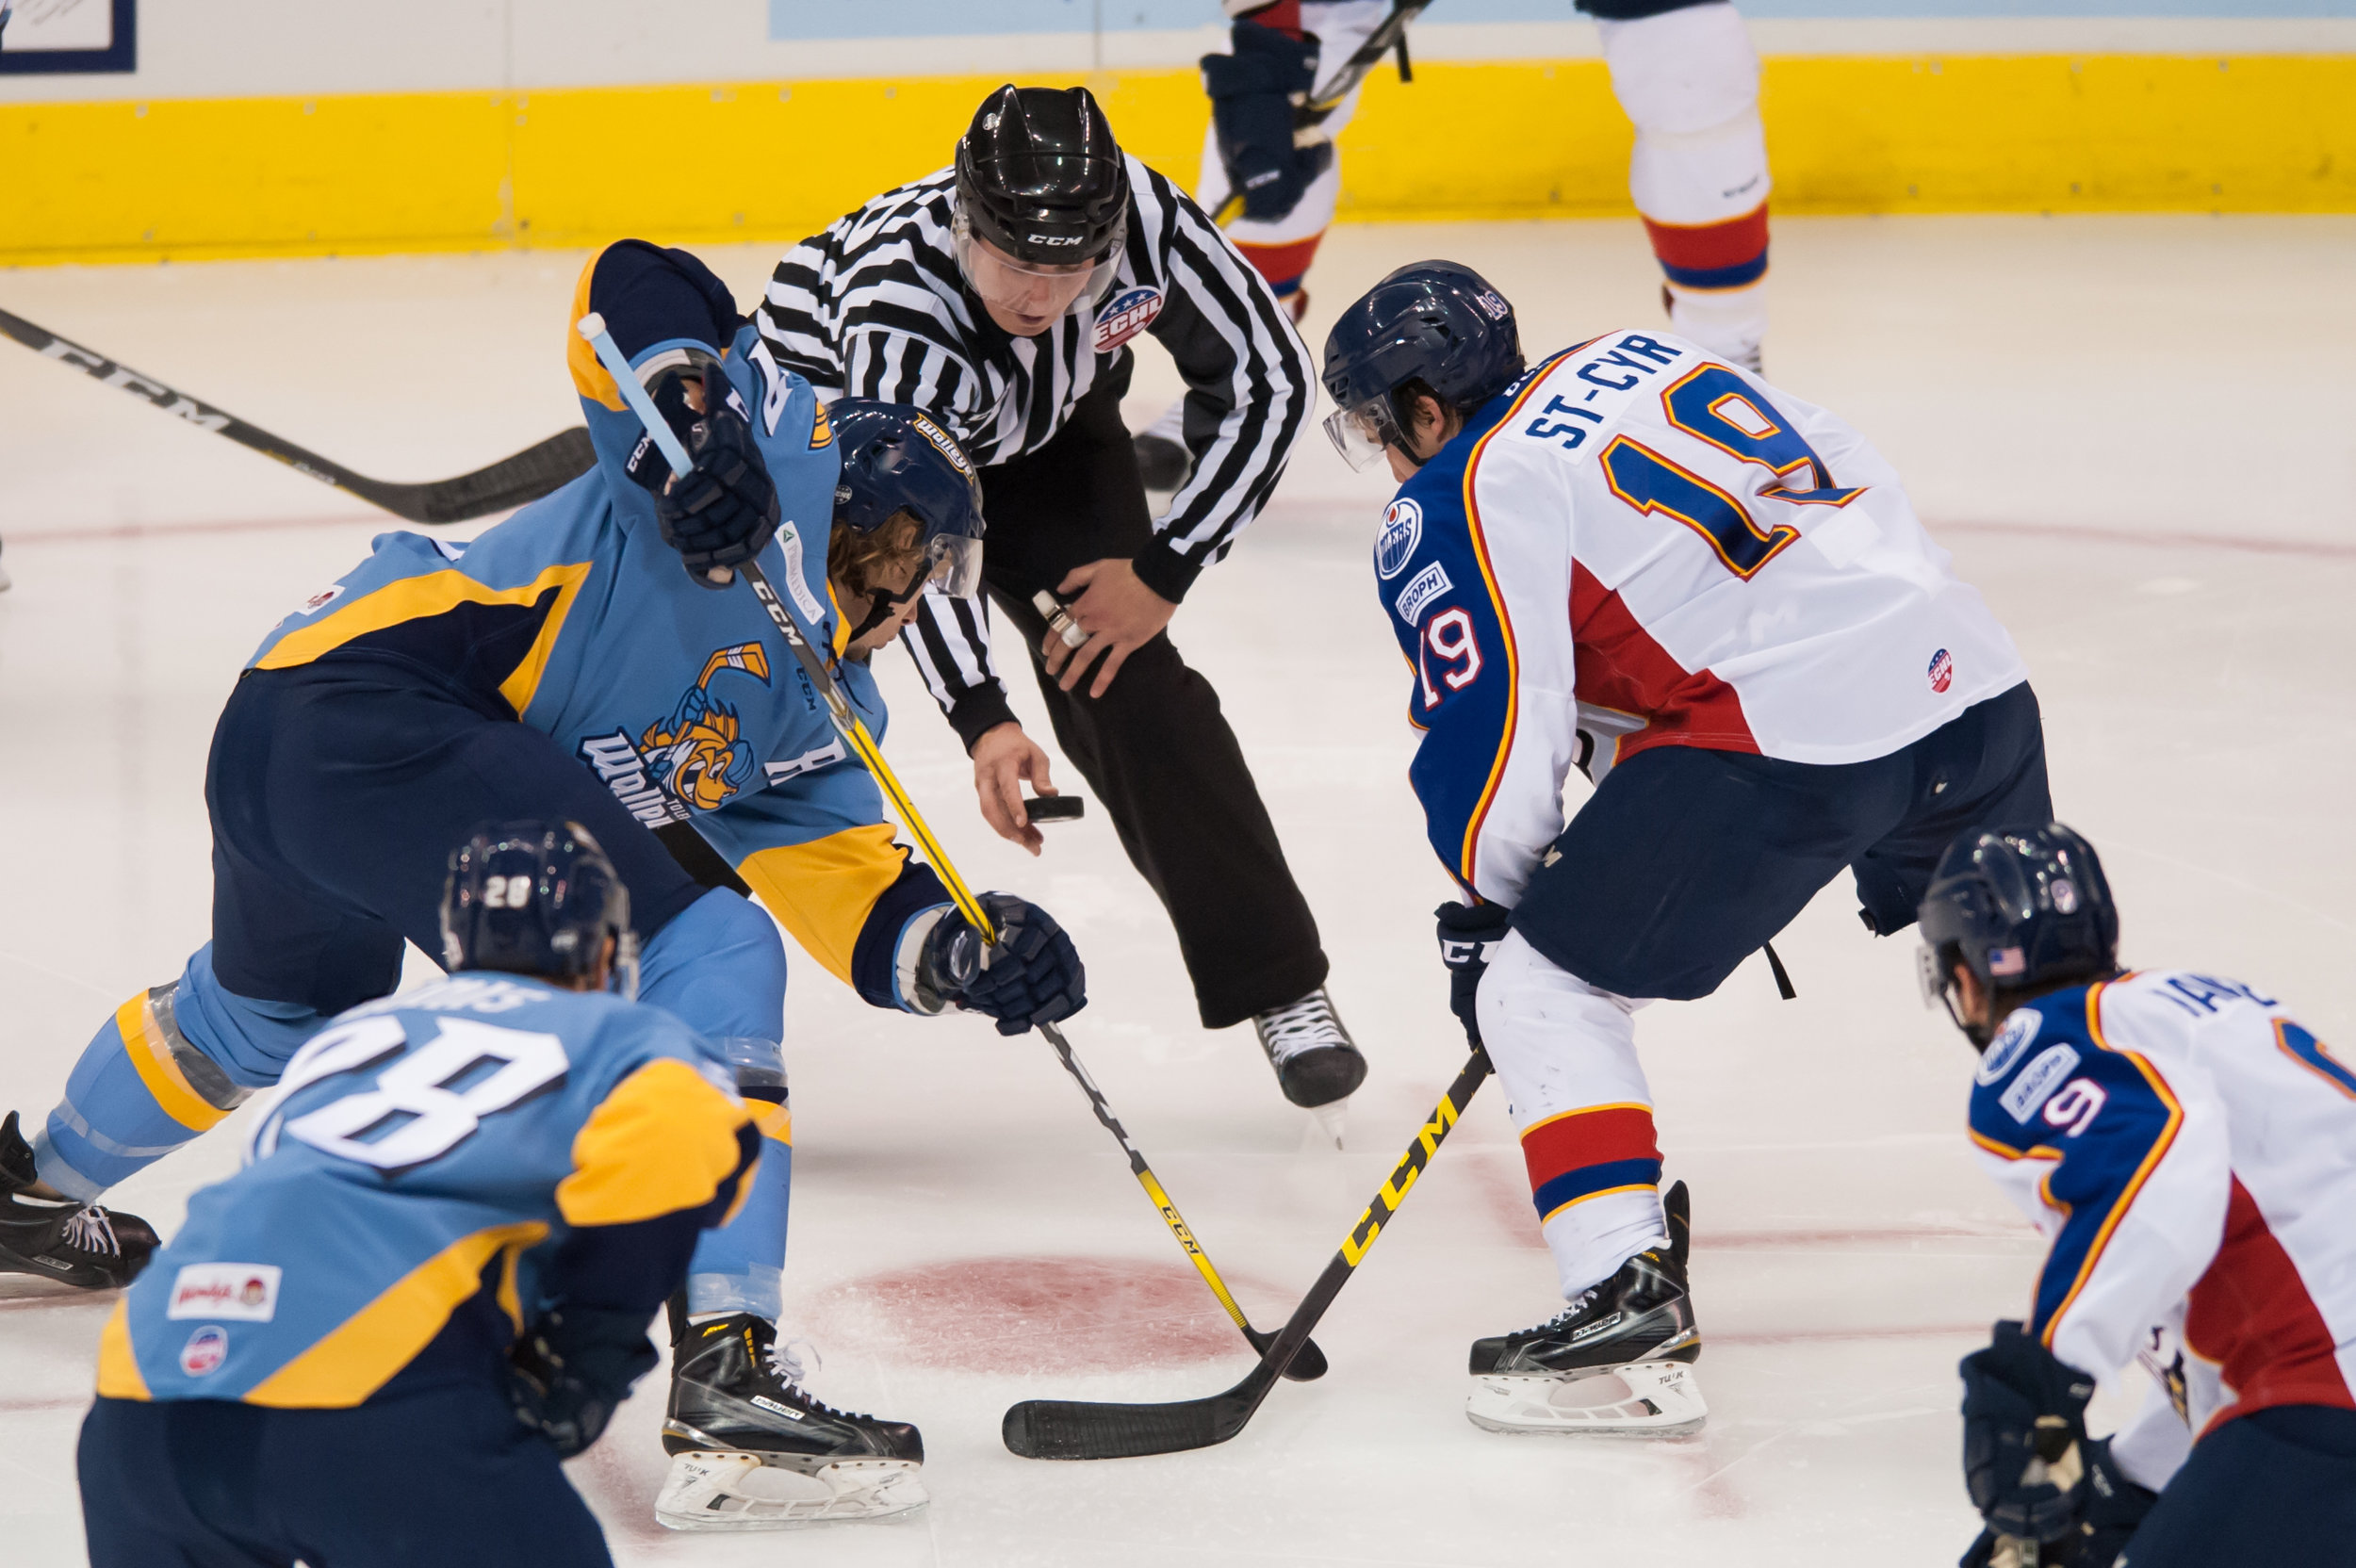 Norfolk Admirals forward Maxime St. Cyr (19) and Toledo Walleye forward A.J. Jenks (27) face off during Saturday night's game at the Scope Arena in Norfolk, Virginia. Toledo defeated Norfolk 4 to 1.